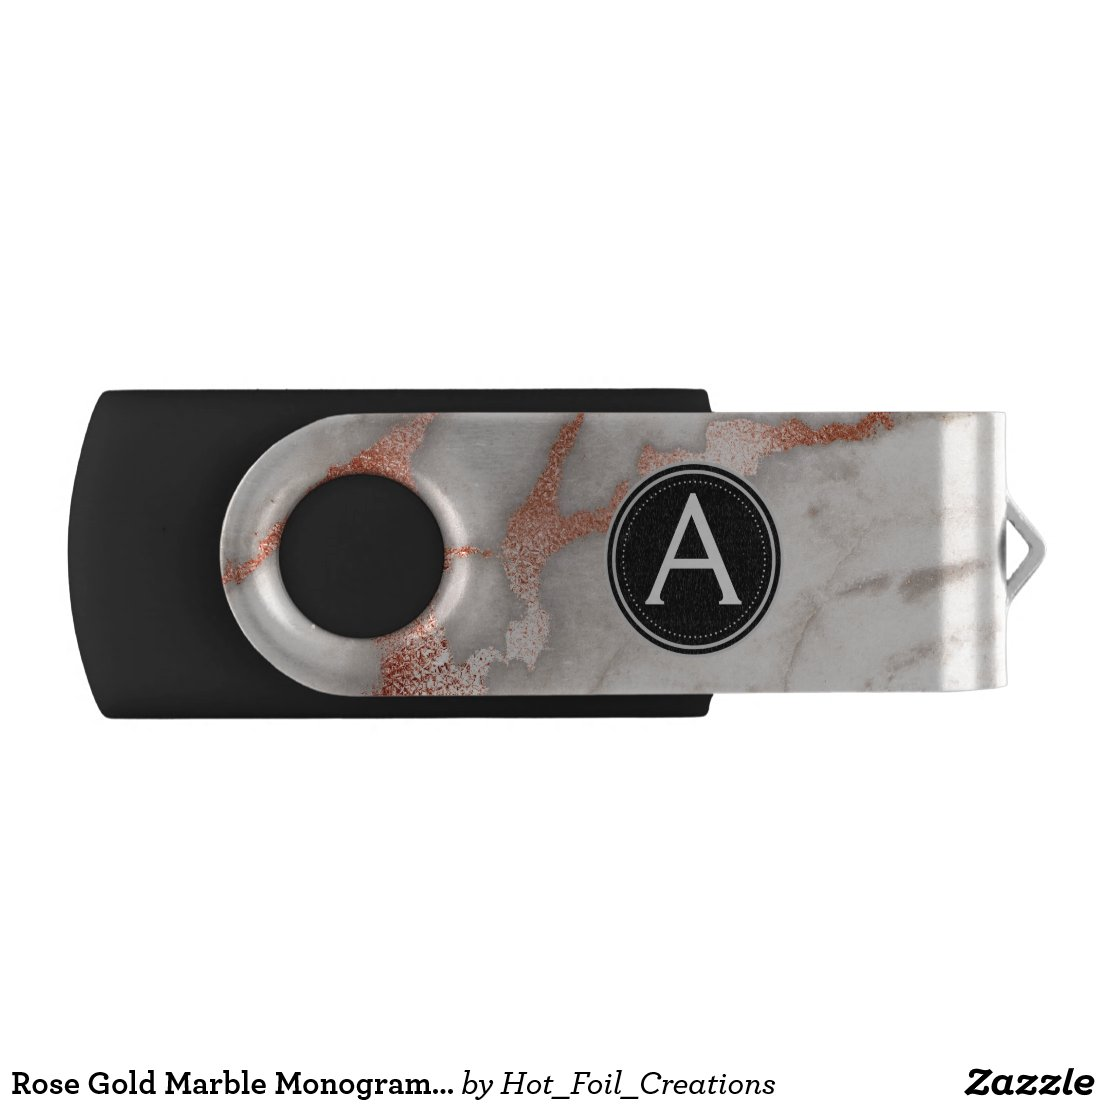 Rose Gold Marble Monogram USB Thumb Drive